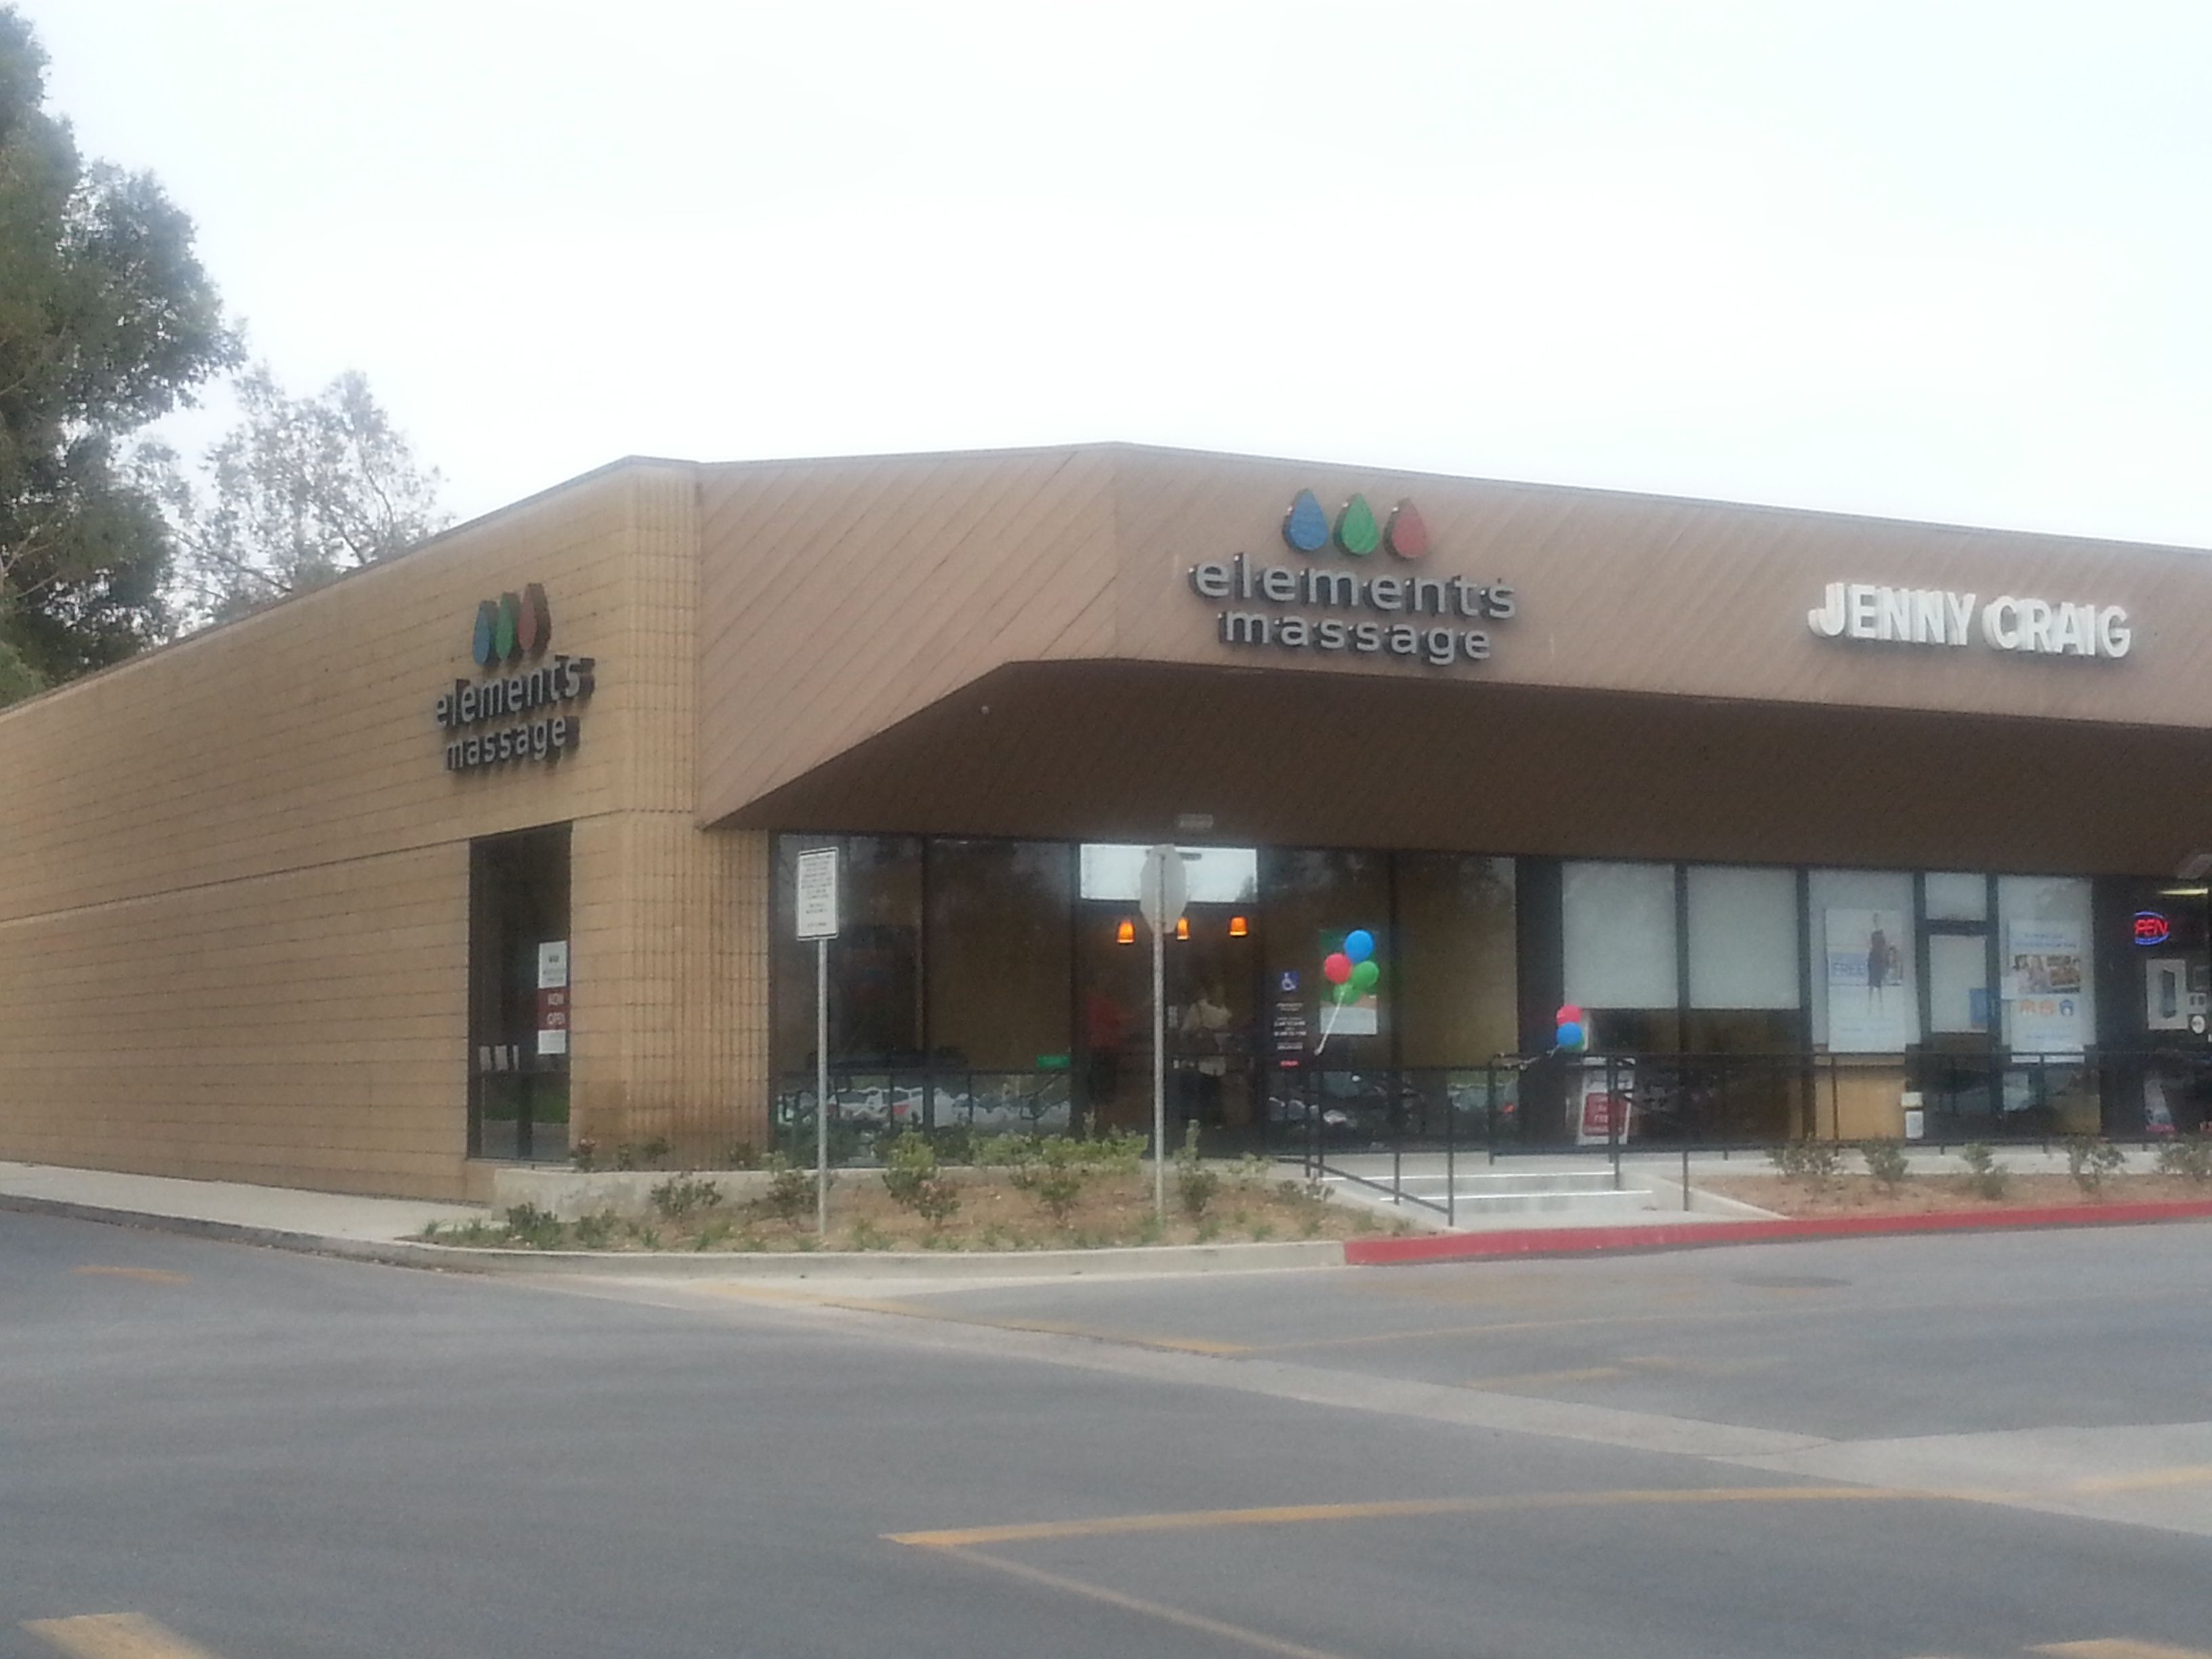 Elements massage simi valley located in sycamore square